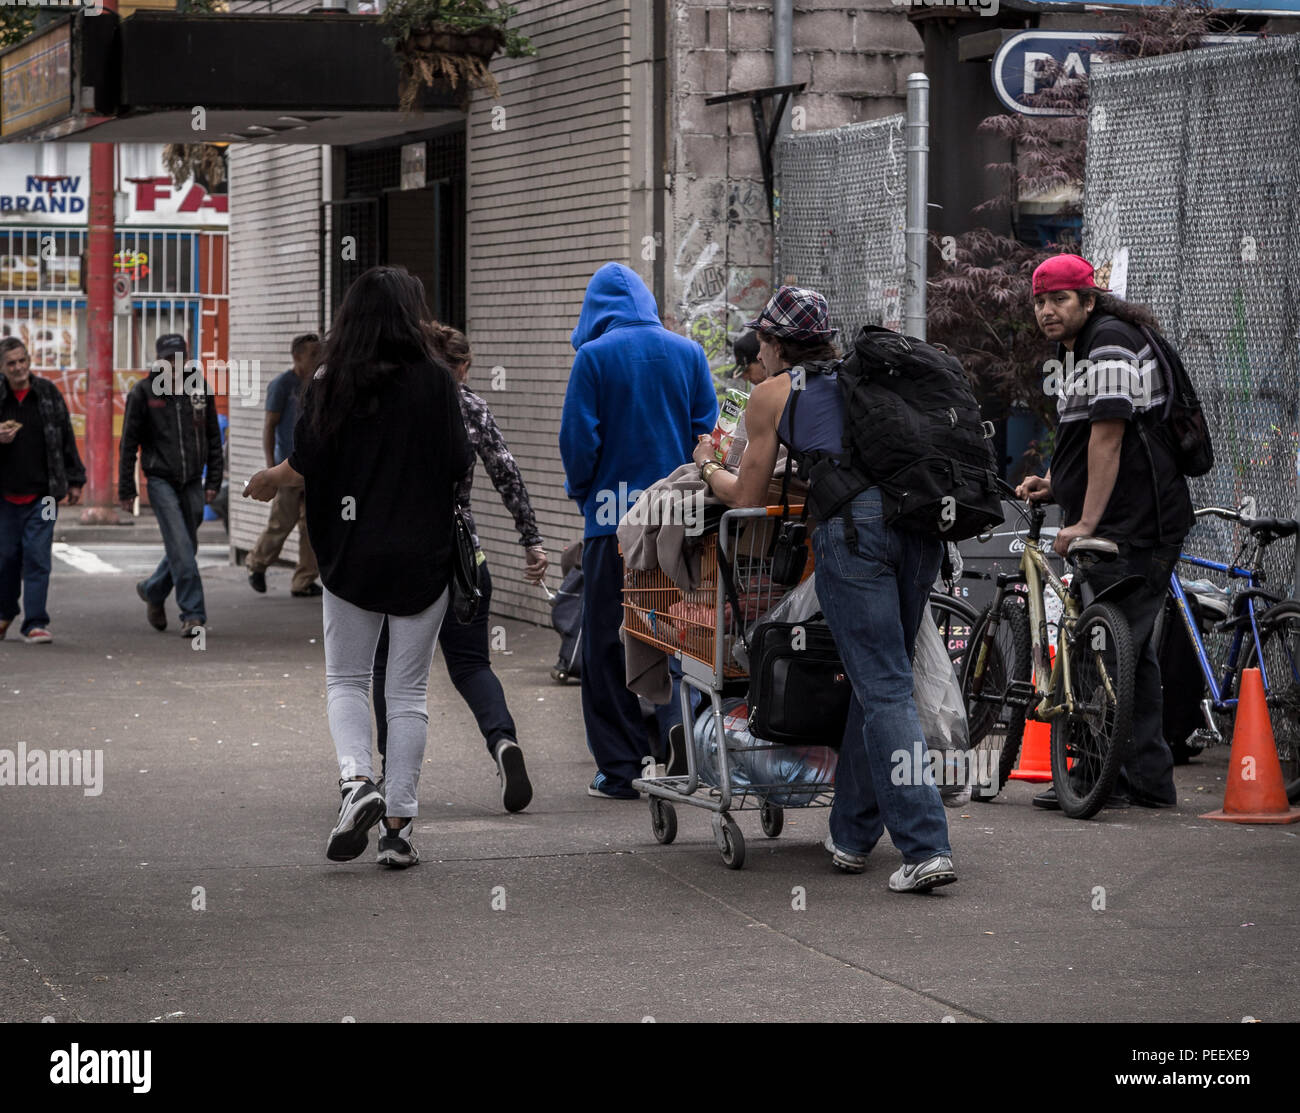 VANCOUVER, BC, CANADA - MAY 11, 2016: A all too common scene of homelessness and poverty that is Vancouver's Downtown Eastside. - Stock Image